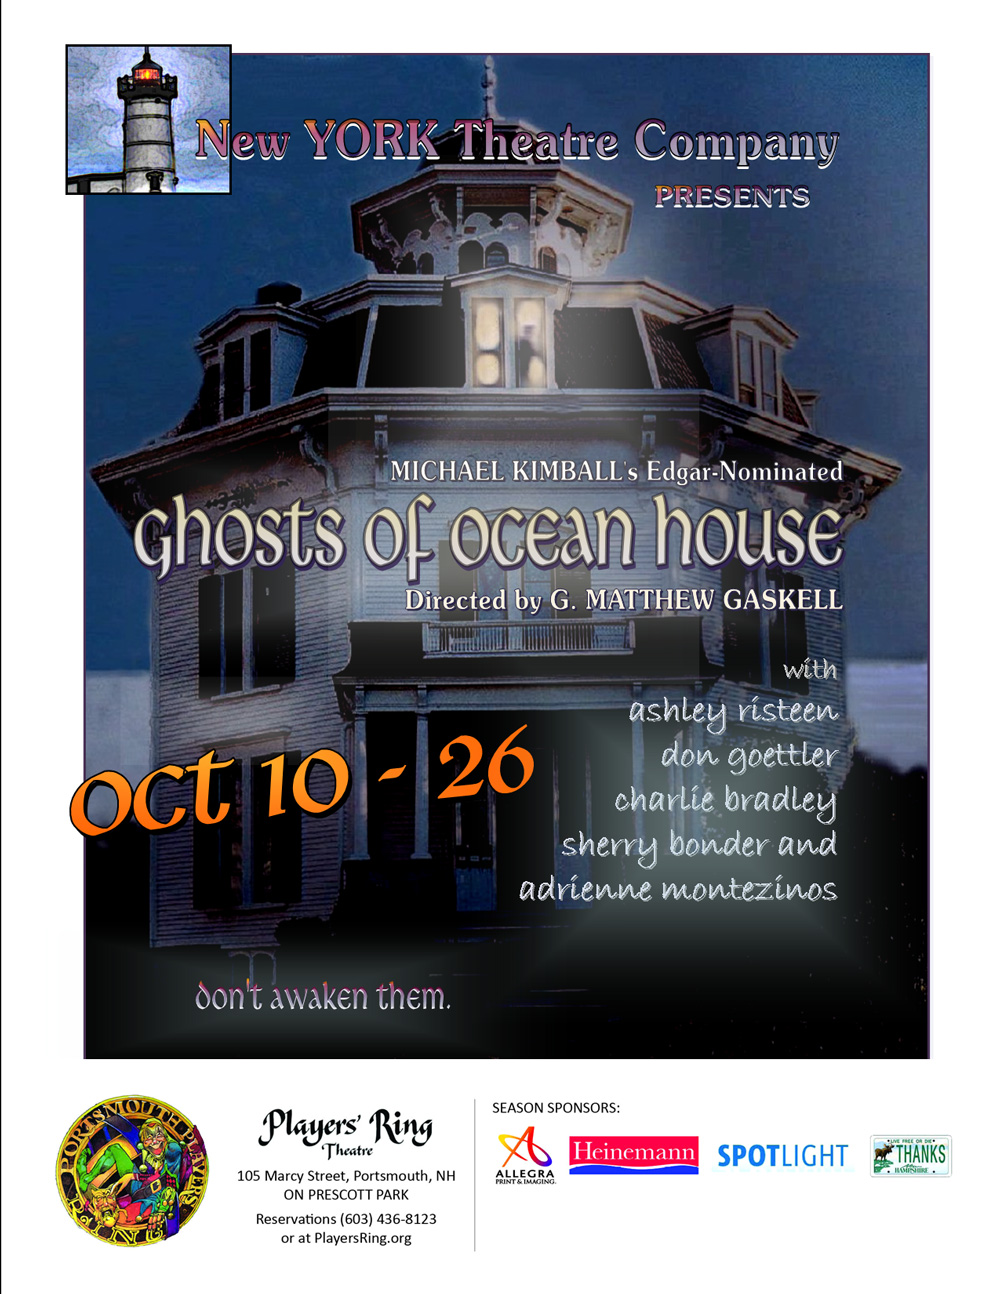 ghosts-of-ocean-house-flyer-players-ring-8.5x11.jpg